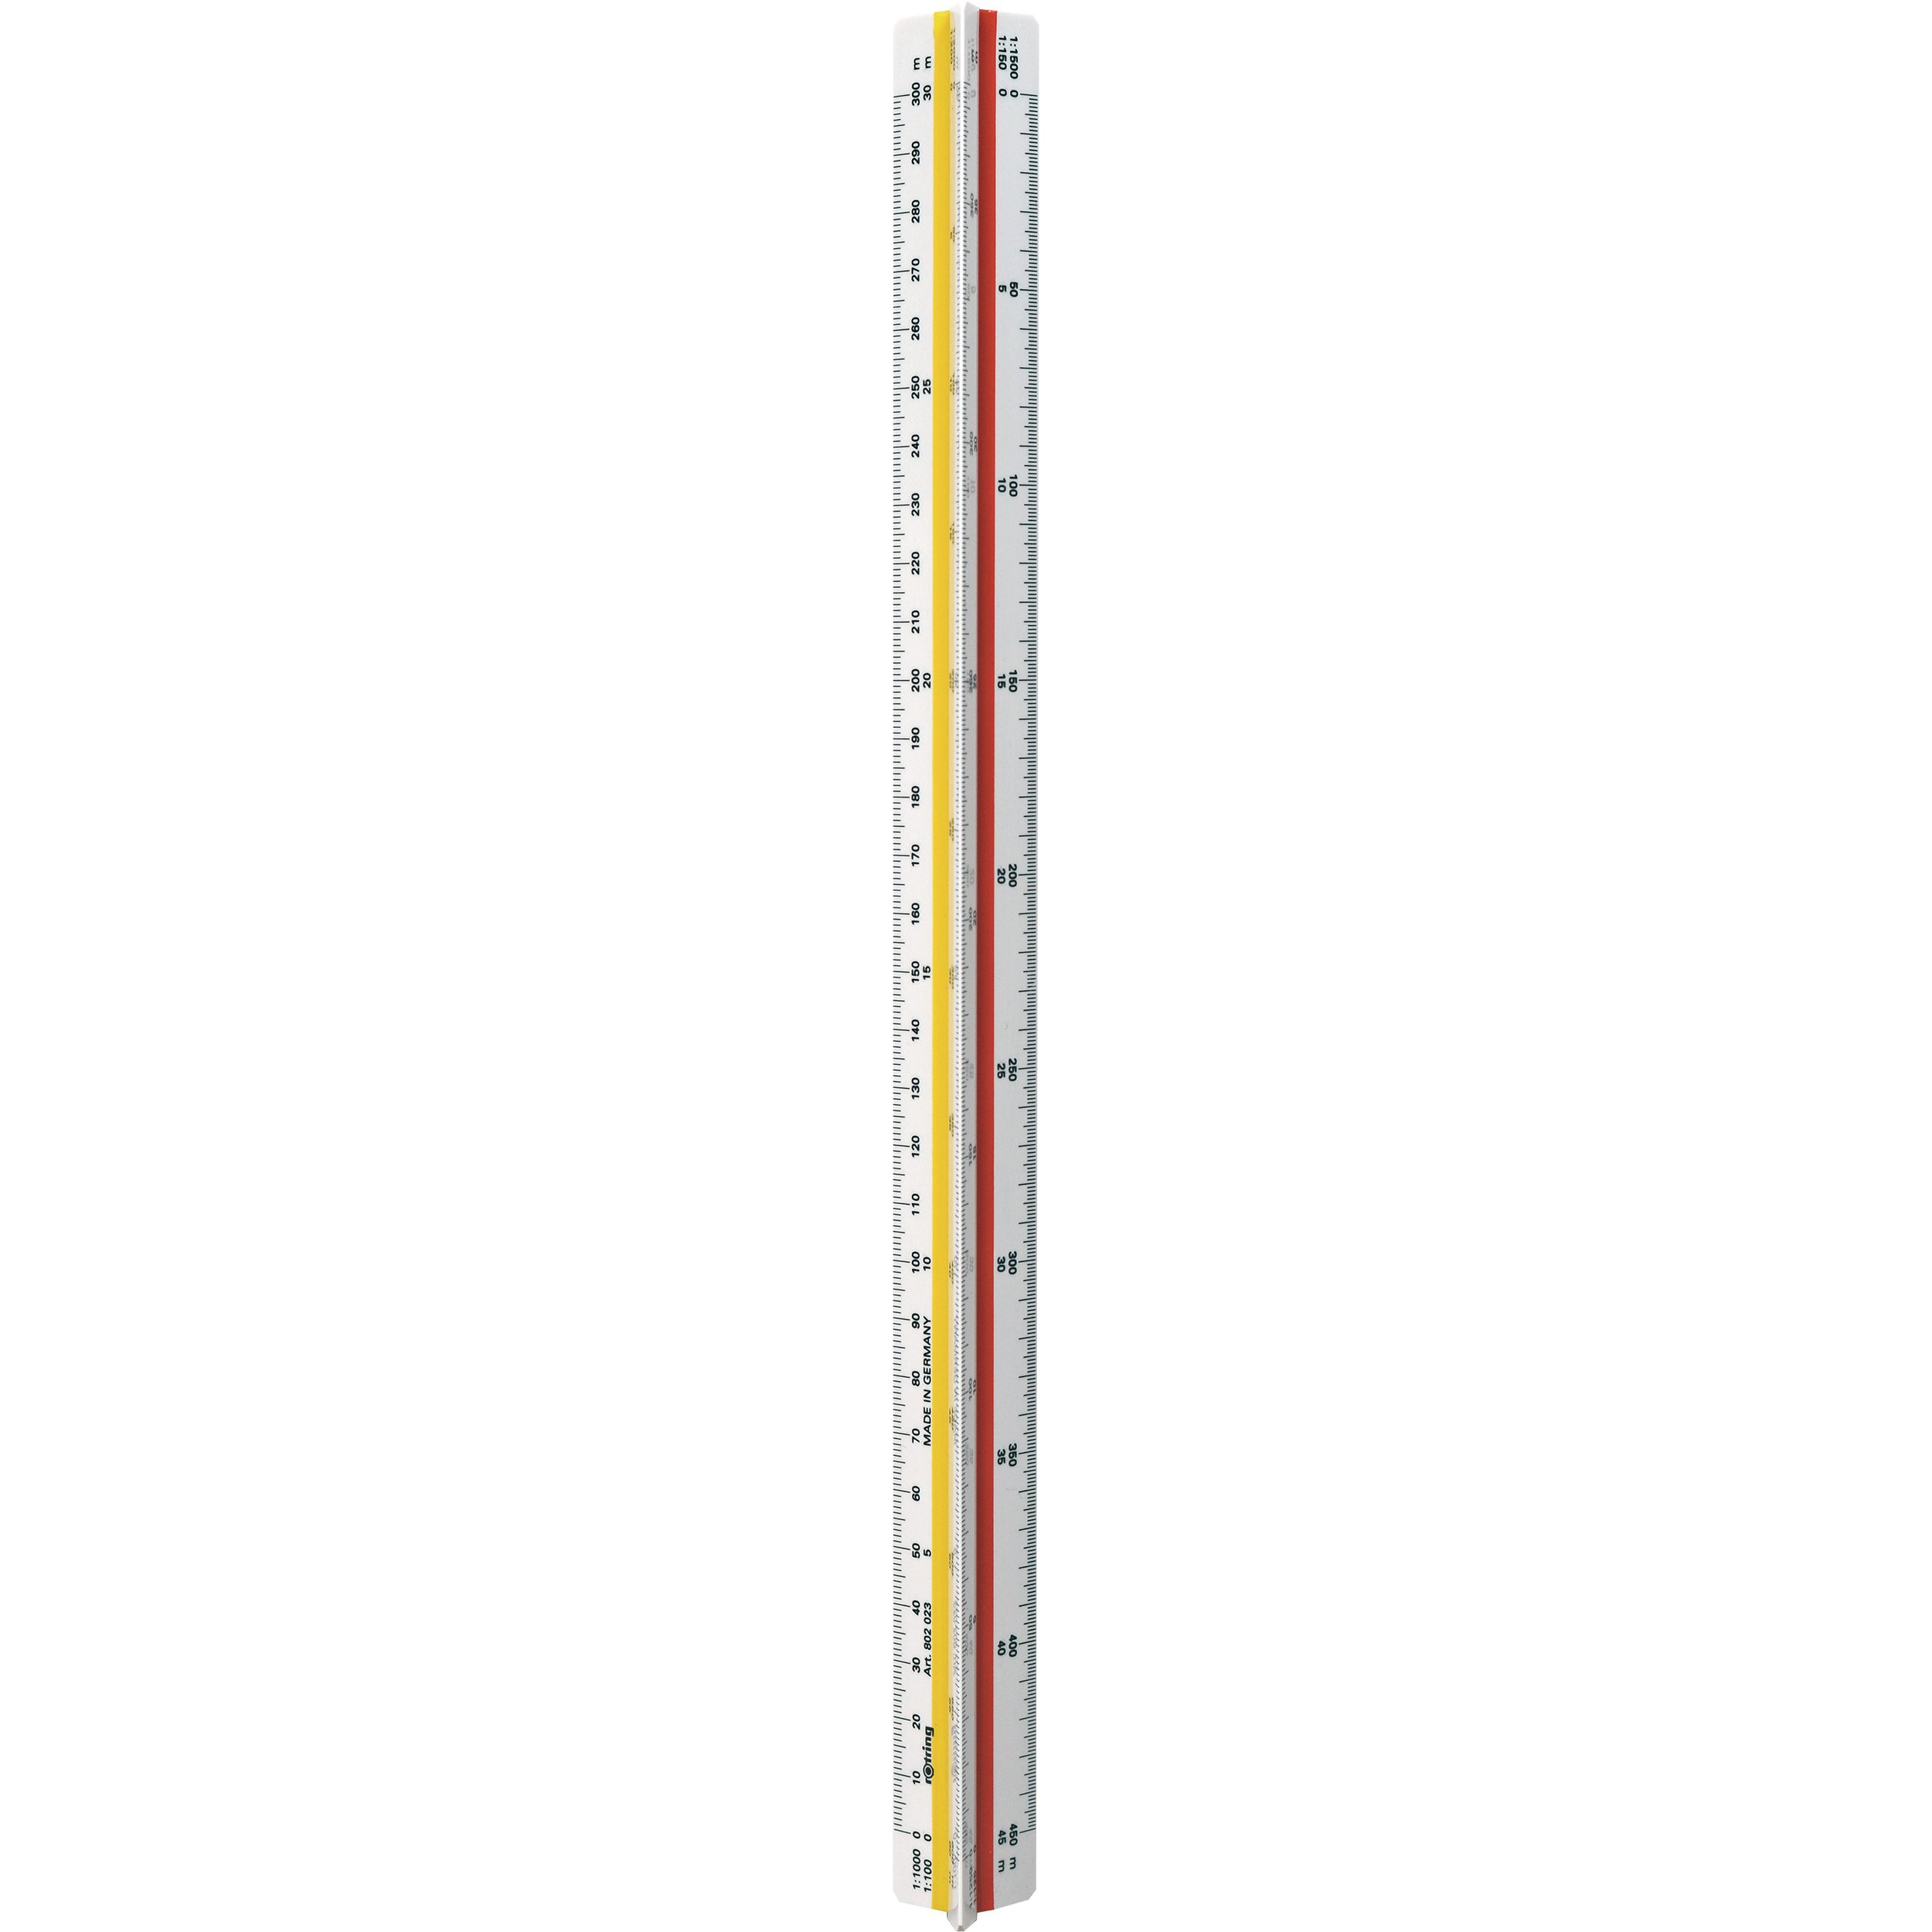 Rotring Ruler Triangular Reduction Scale 6 Surveying 1-25 to 1-2500 with 2 Coloured Flutings Ref S0220721 by Rotring